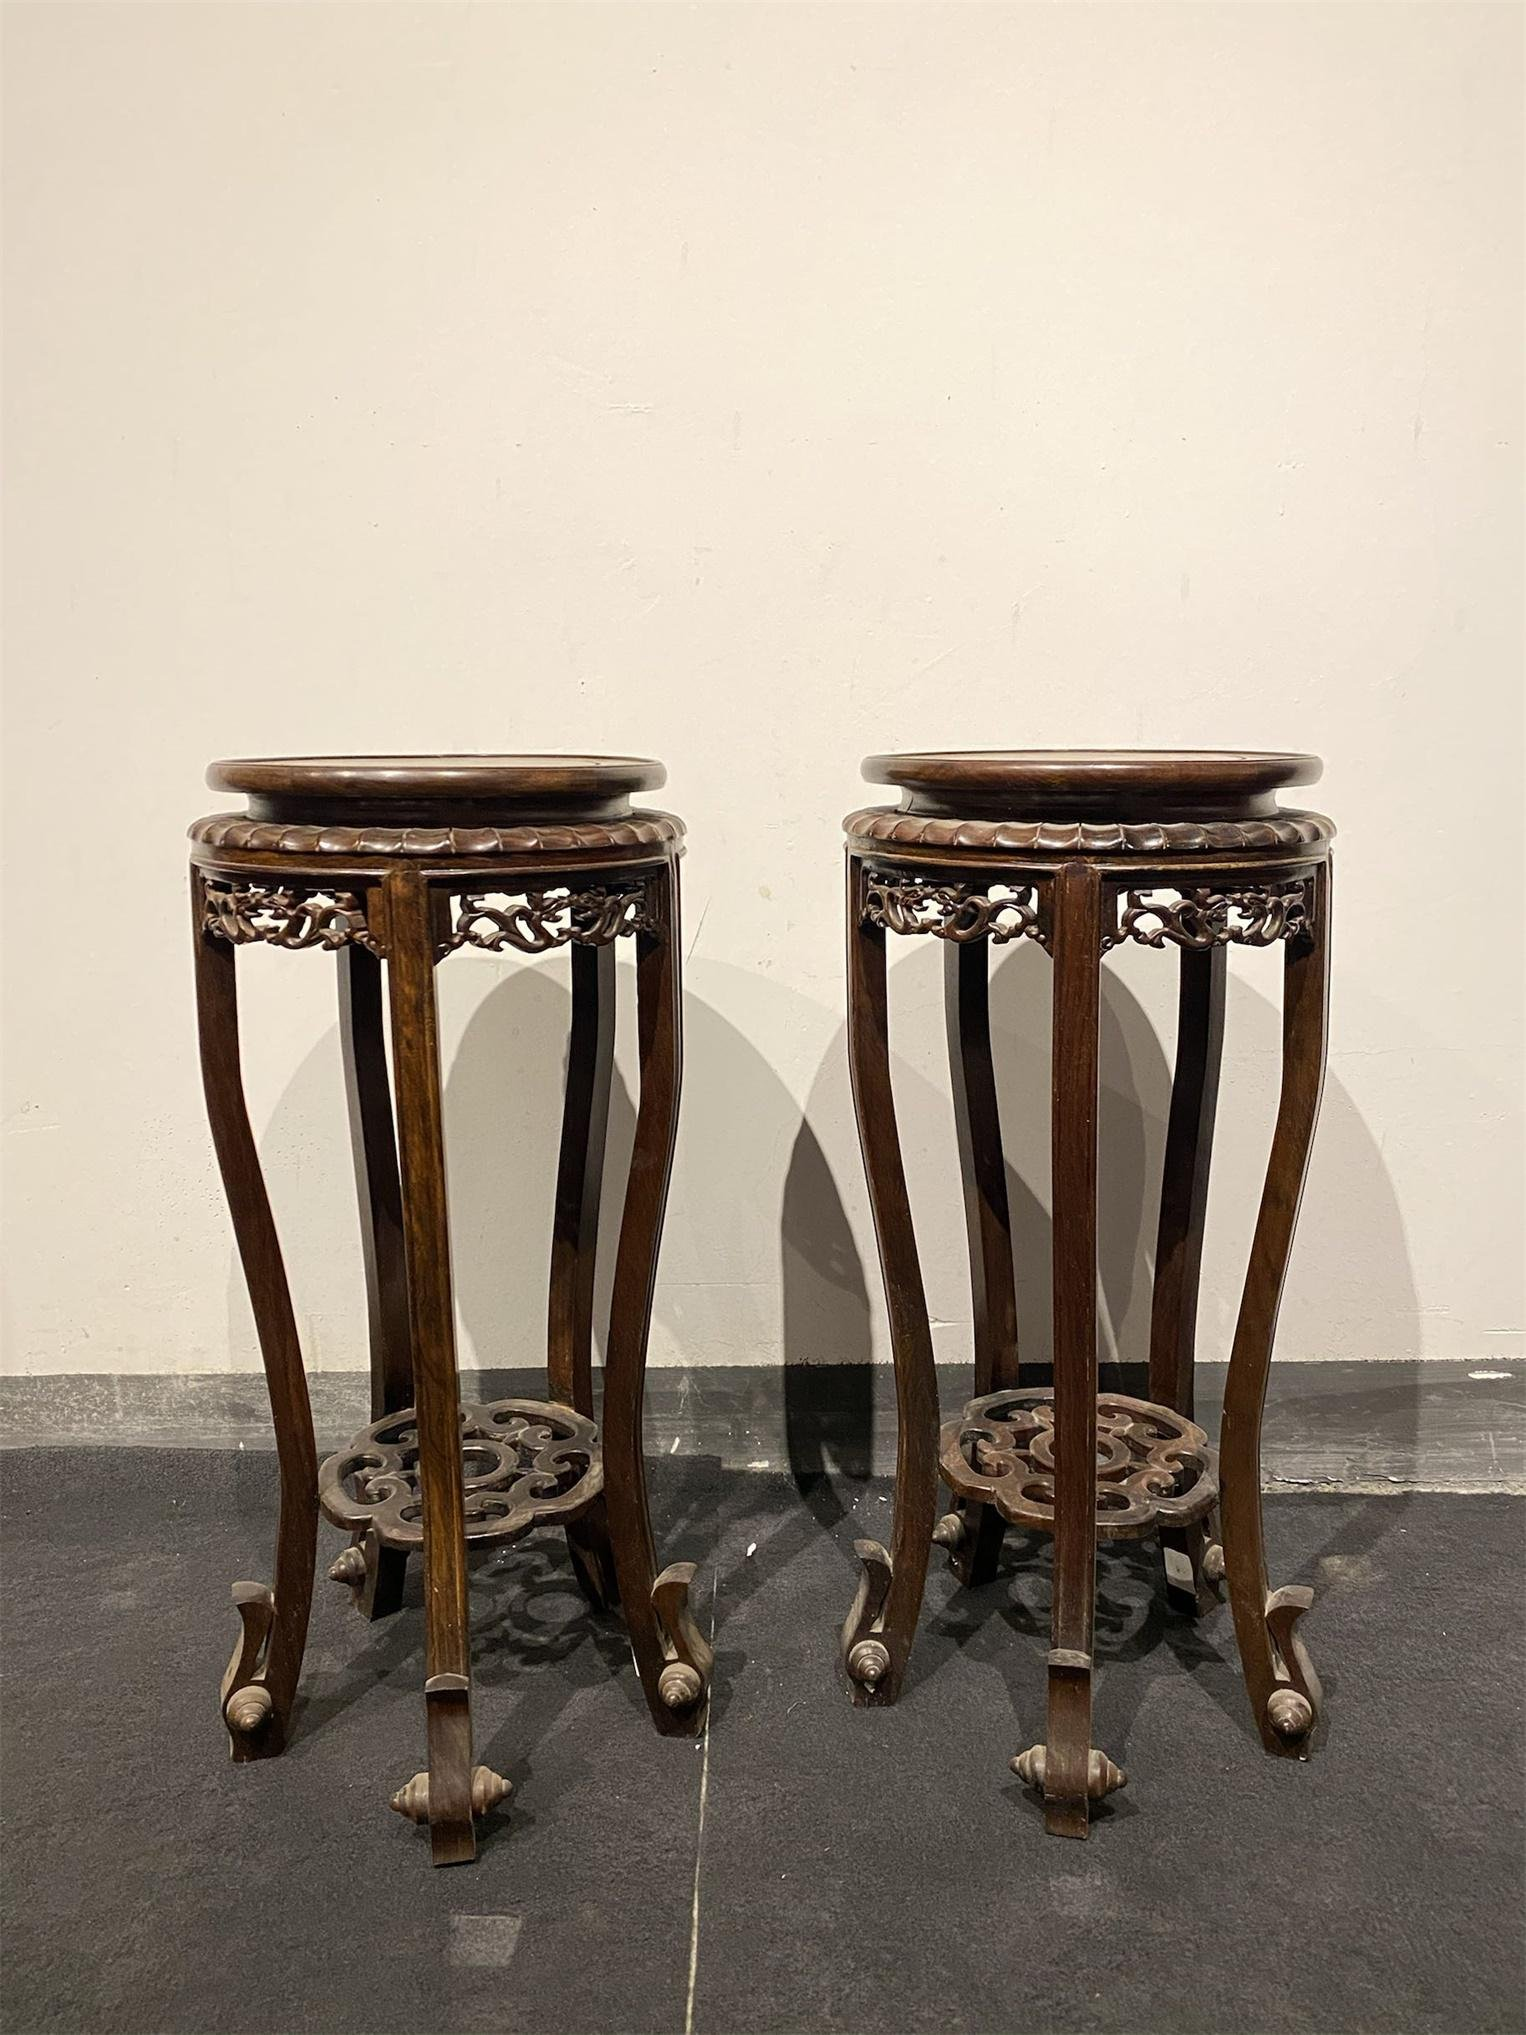 A Pair of Chinese Carved Hardwood Flower Stands